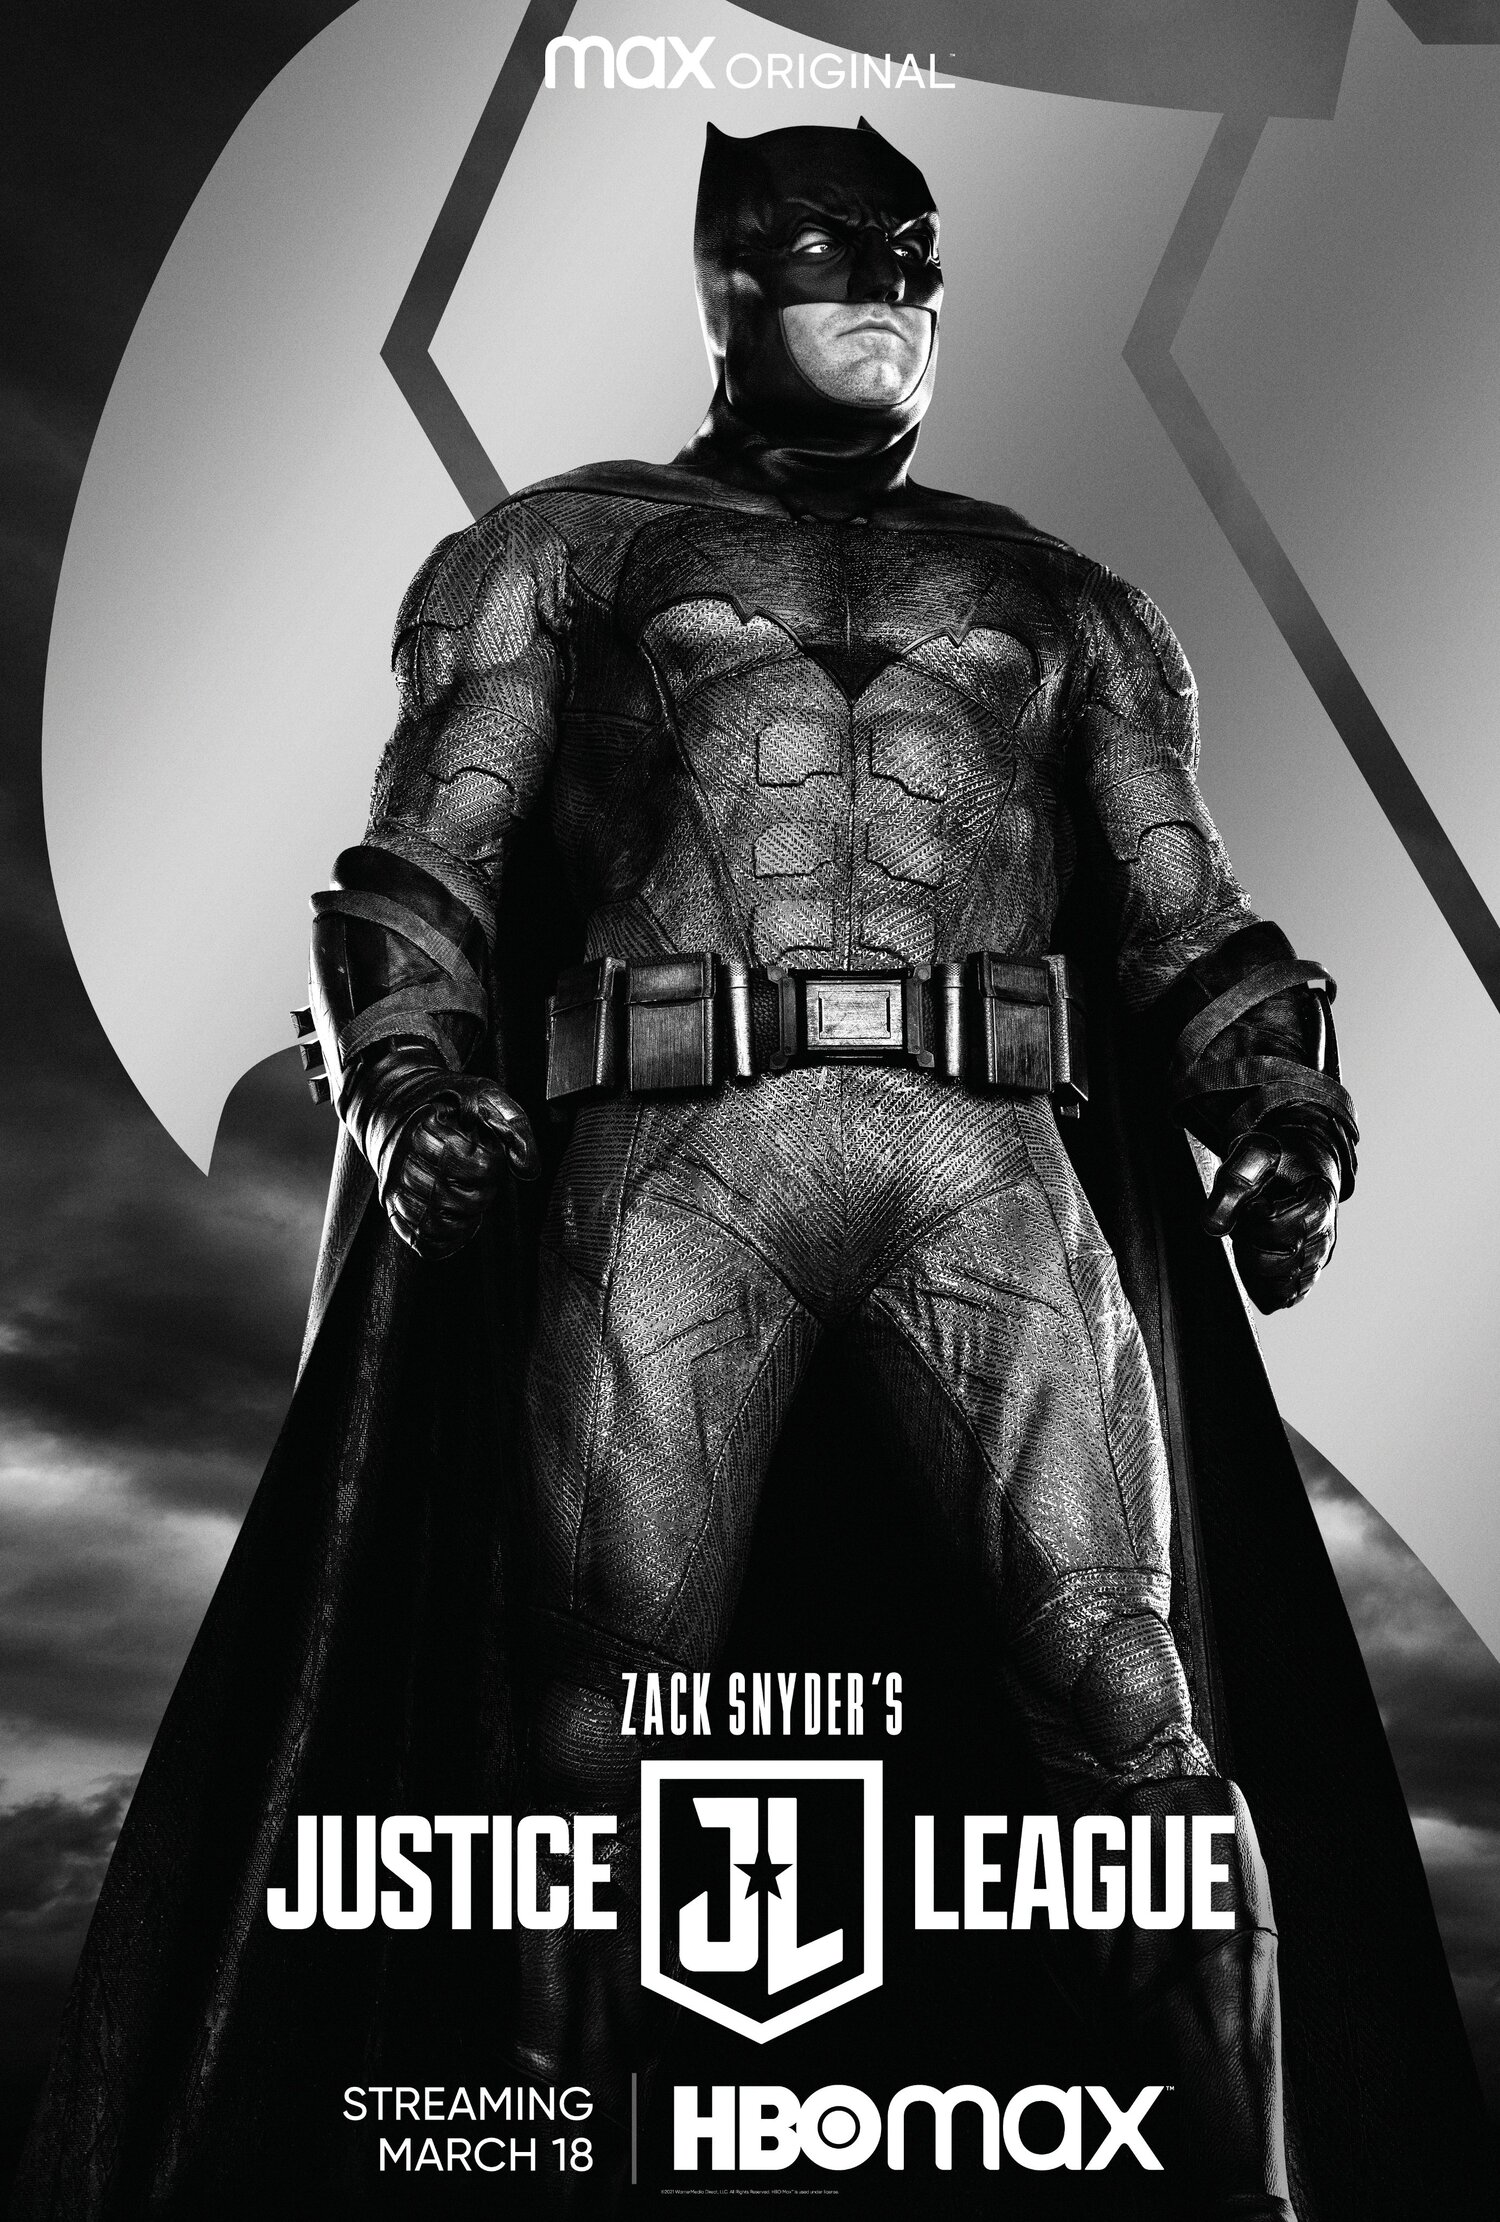 zack-snyders-justice-league-gets-a-new-trailer-focusing-on-batman